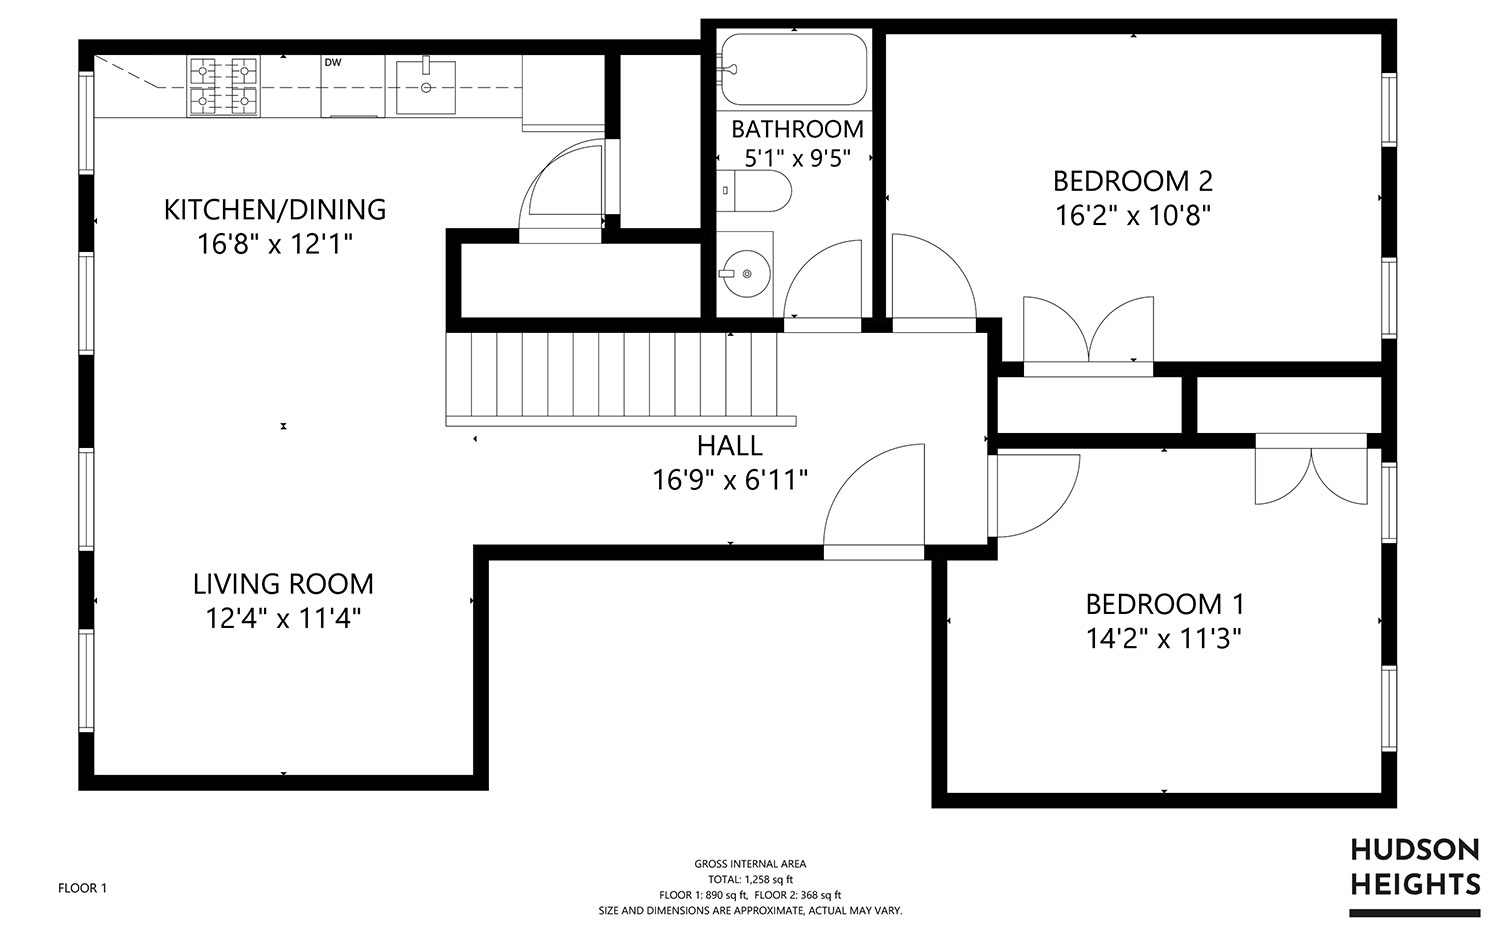 floor plans for nyc real estate